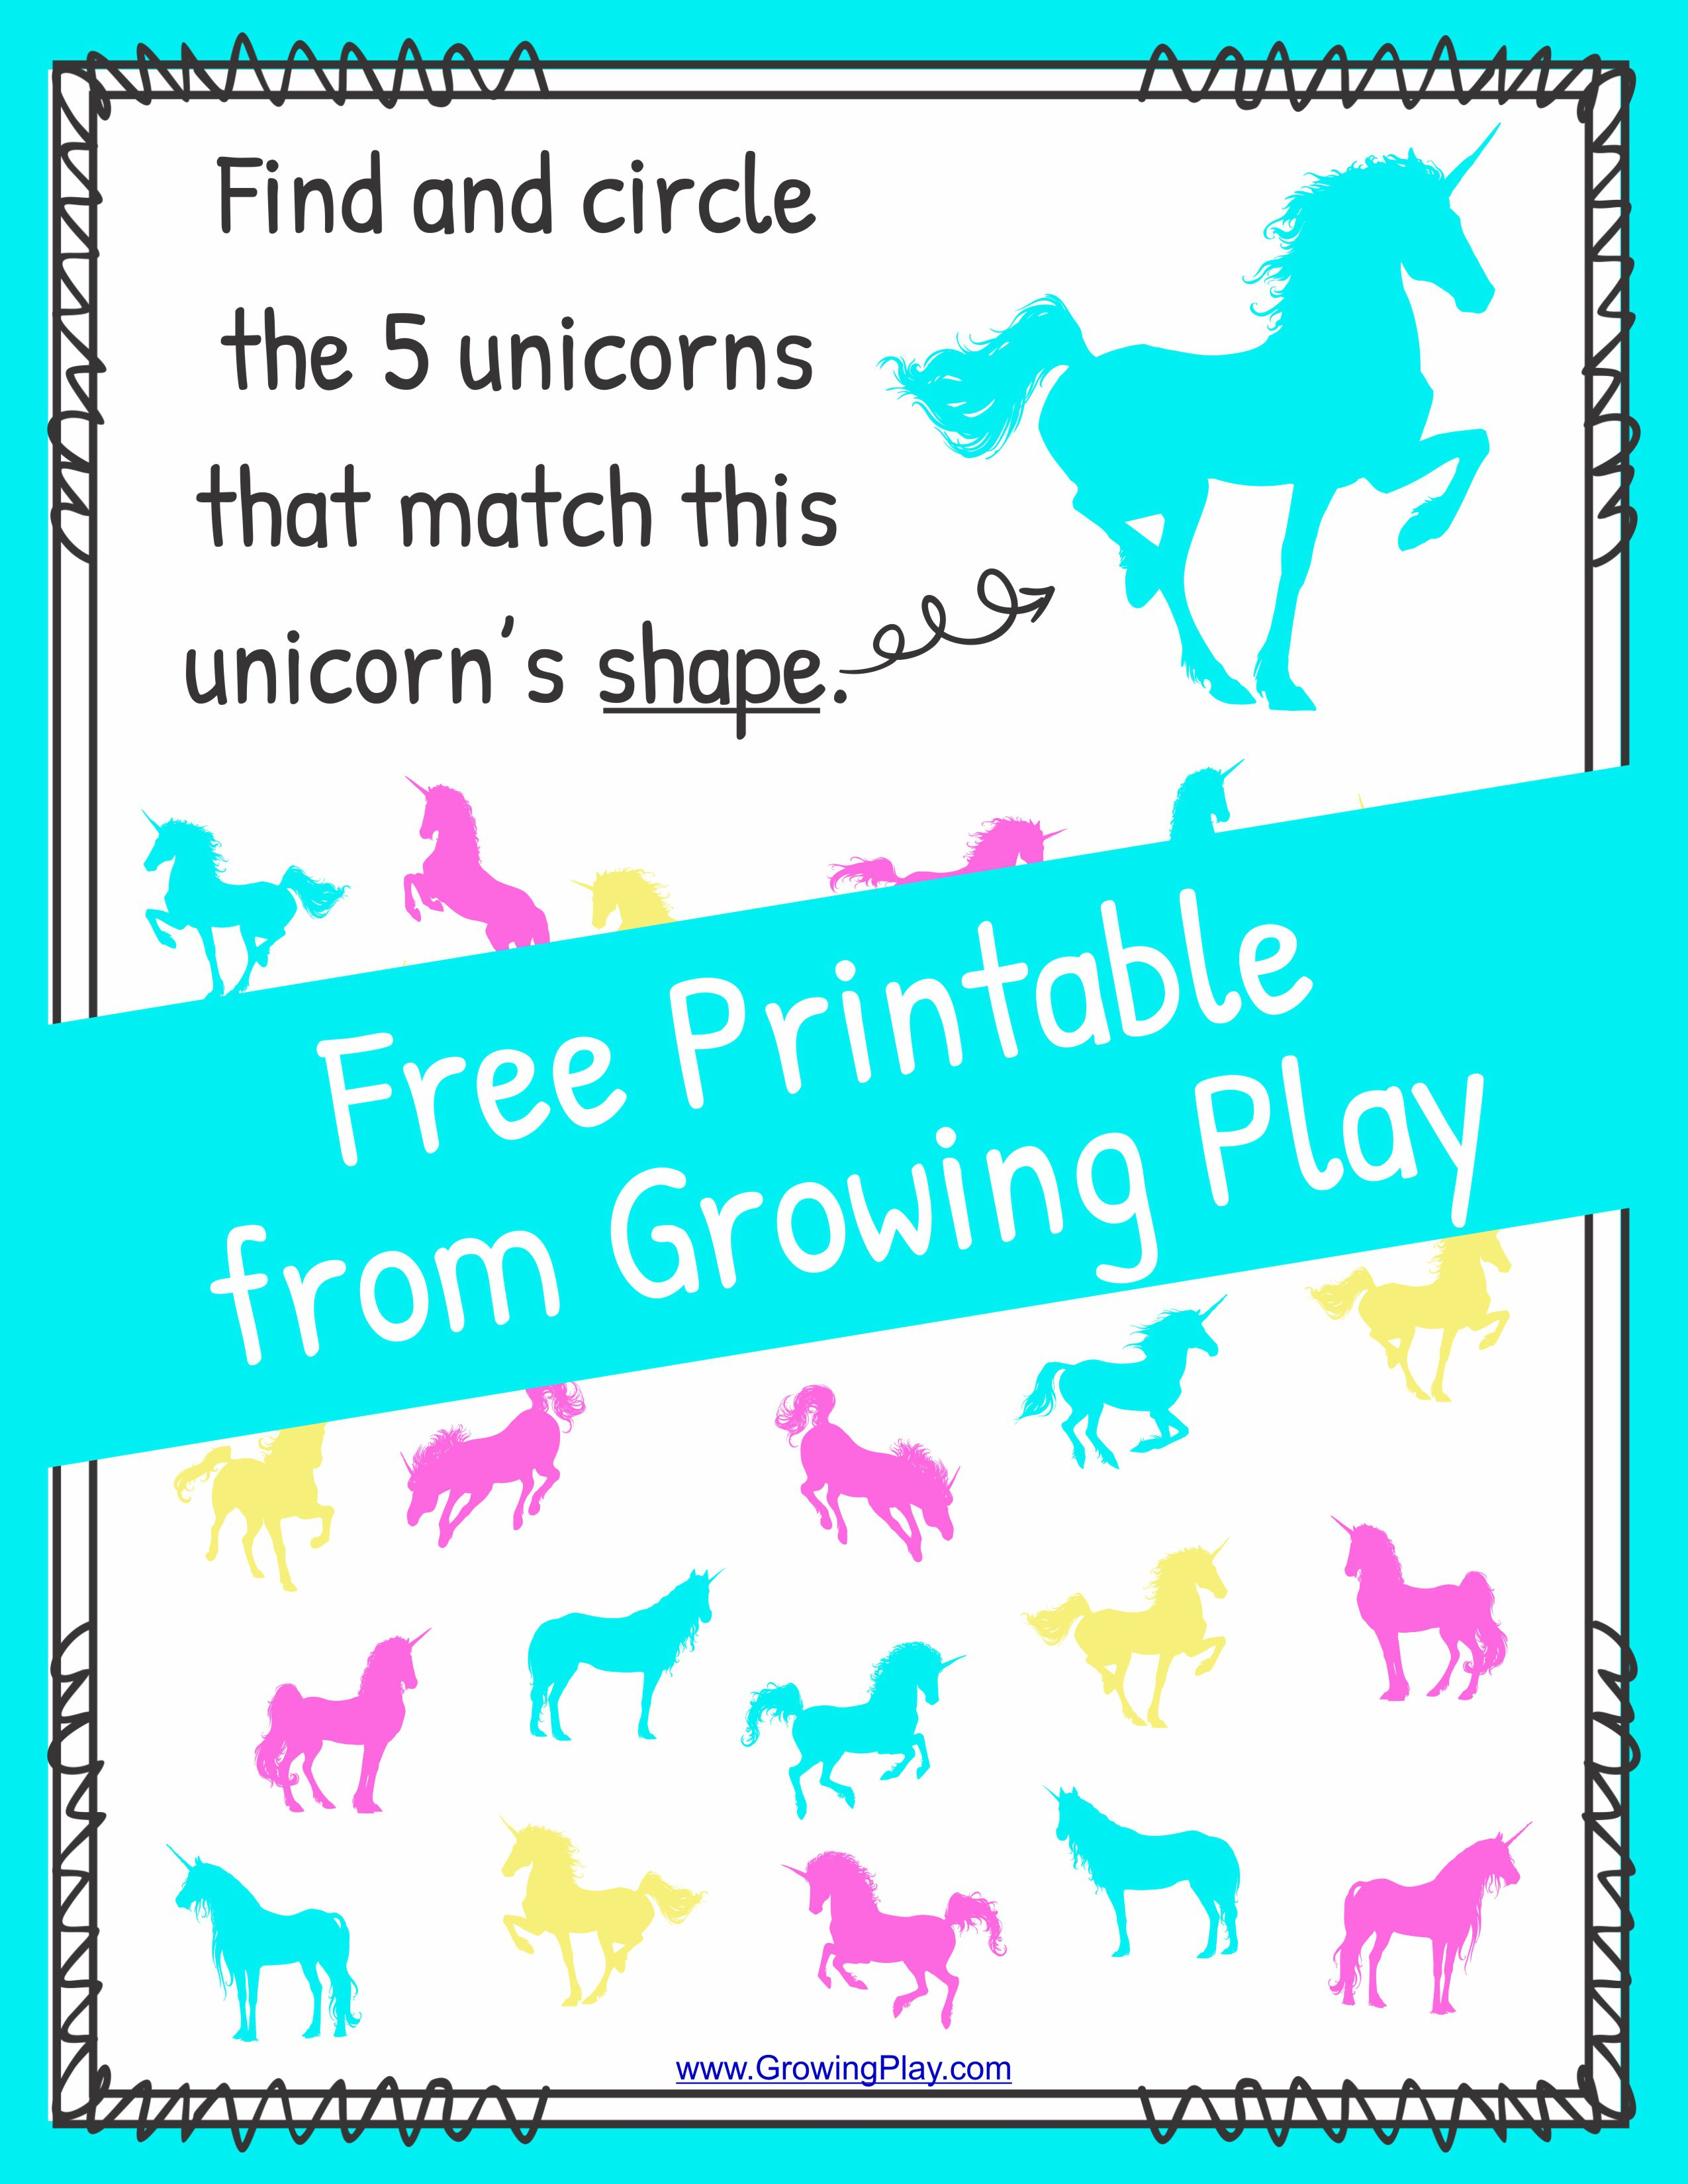 unicorns Archives - Page 2 of 3 - Growing Play